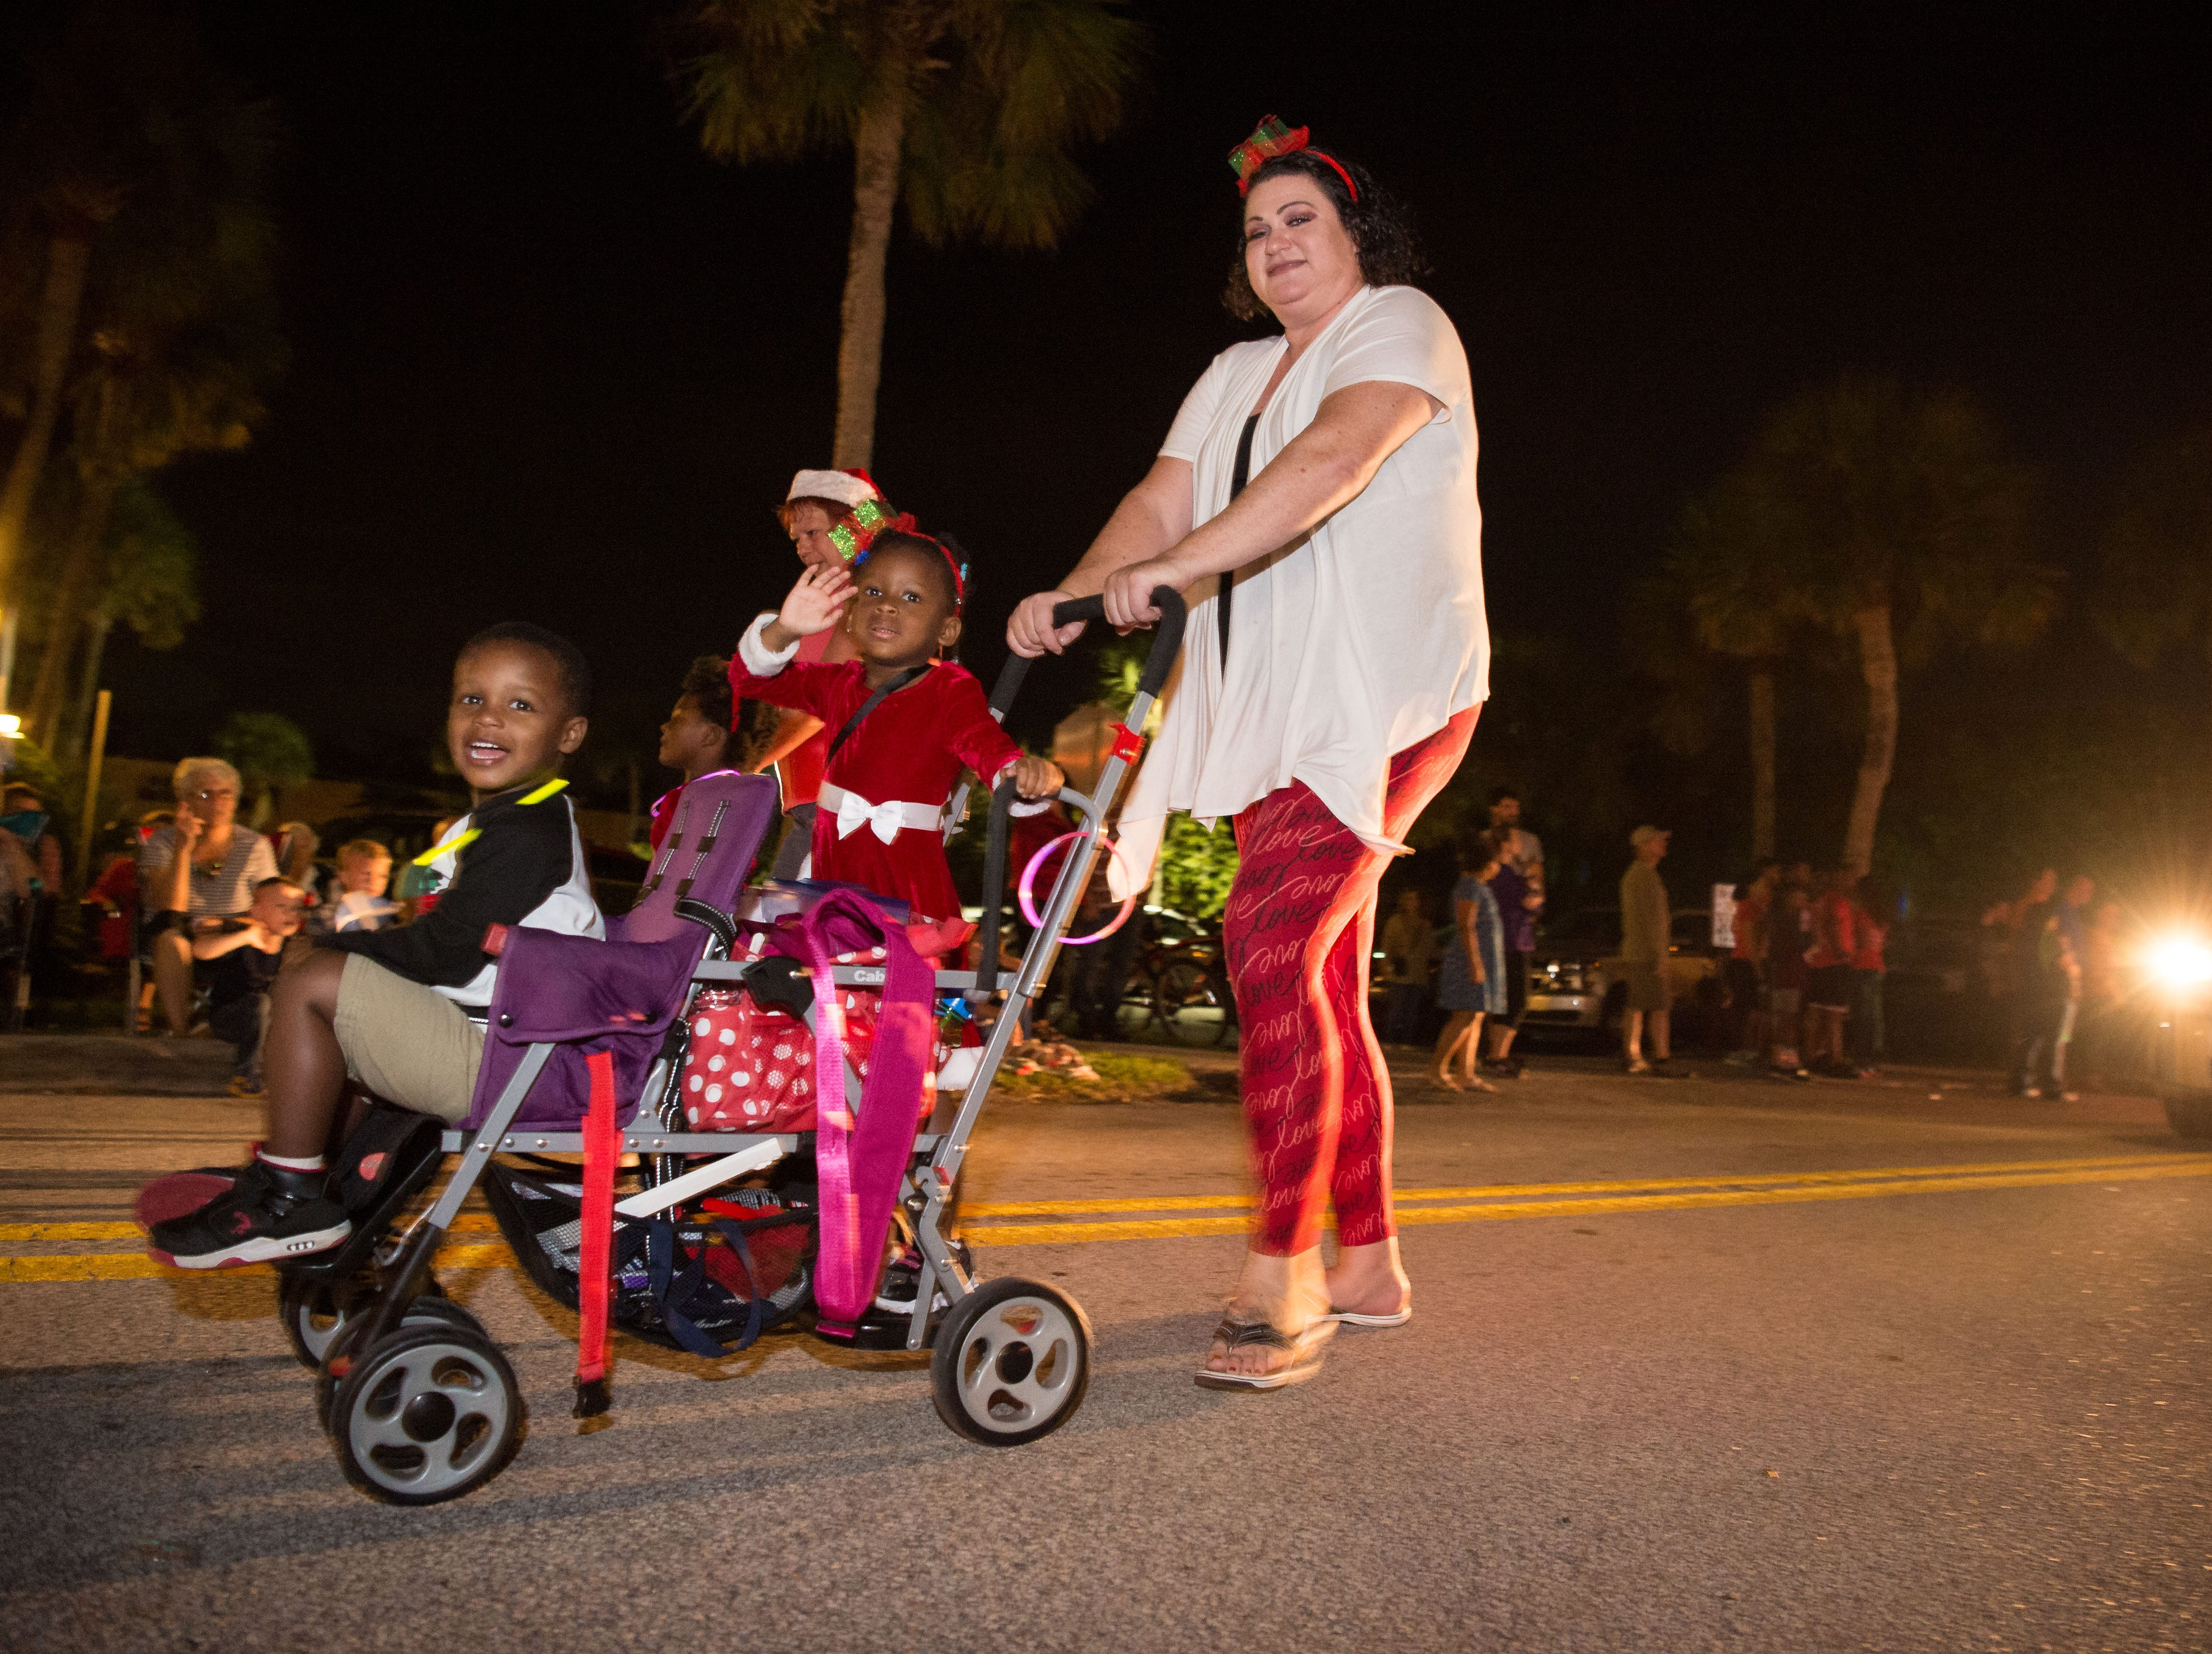 Spectators and participants attend the 34th annual Centennial Christmas Parade along Ocean Drive on Saturday, Dec. 1, 2018, in Vero Beach. The fourth annual Candy Cane 3K preceded the parade.